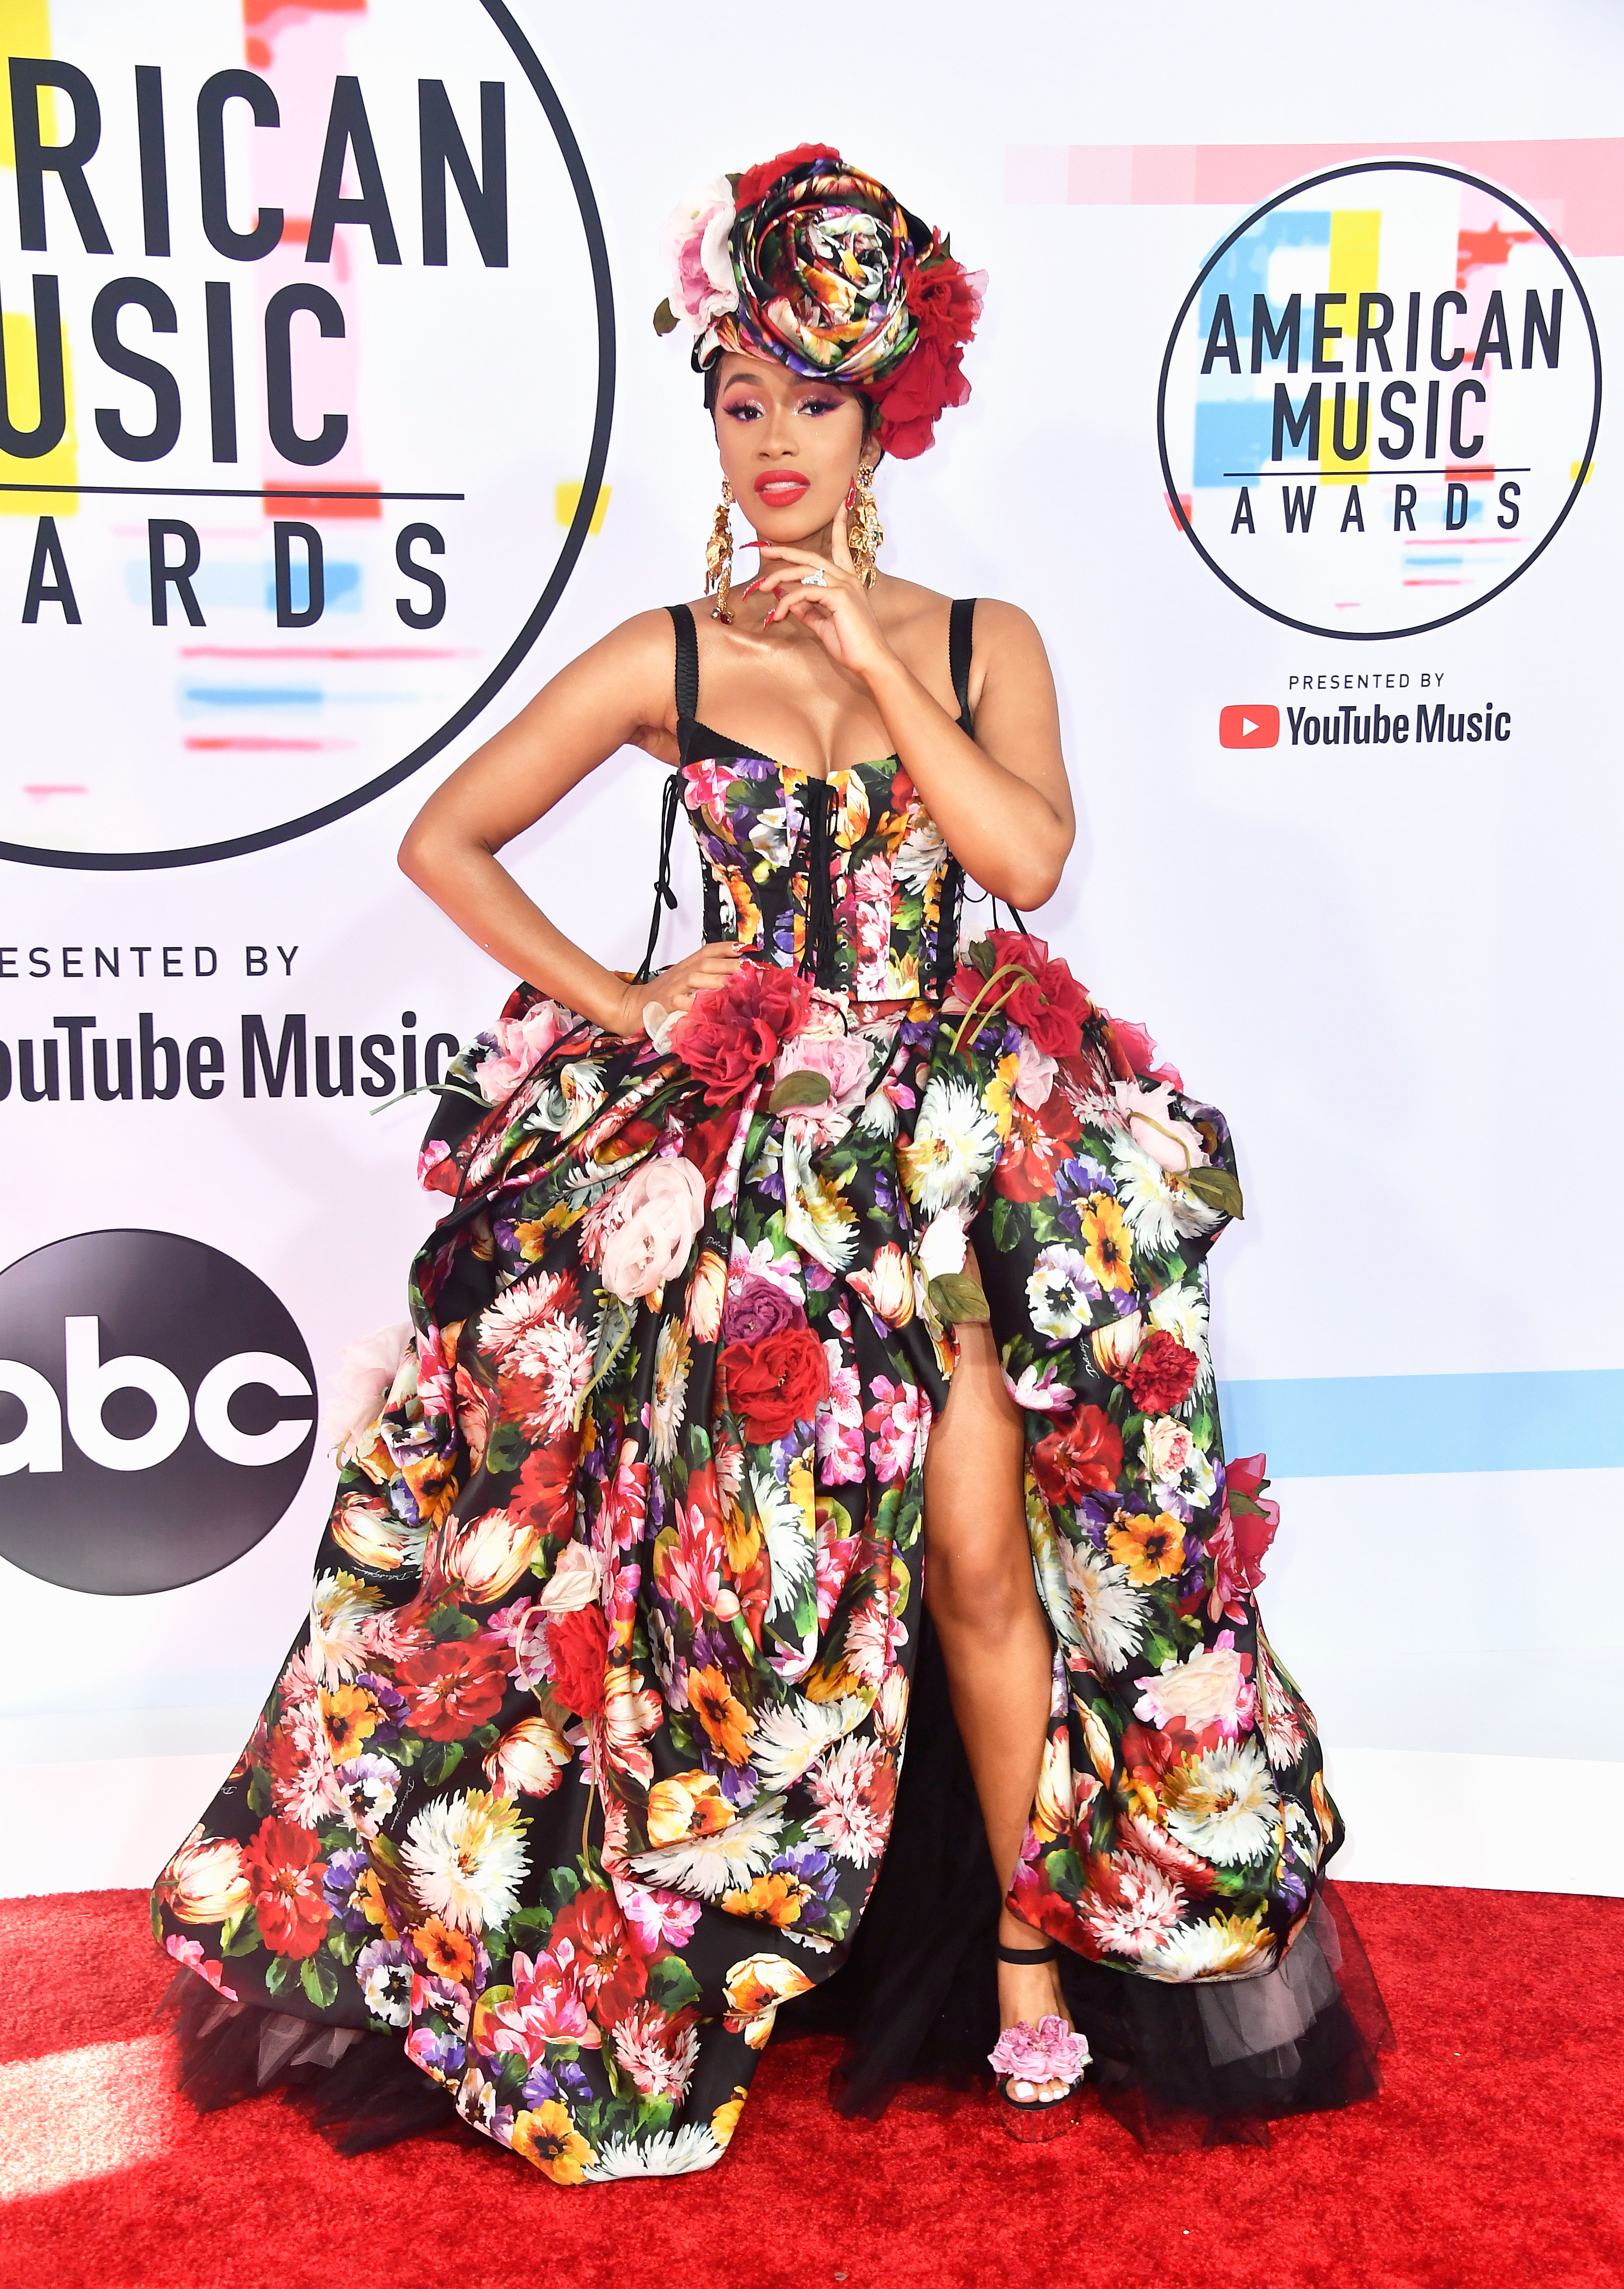 Music American awards red carpet style forecast to wear for winter in 2019